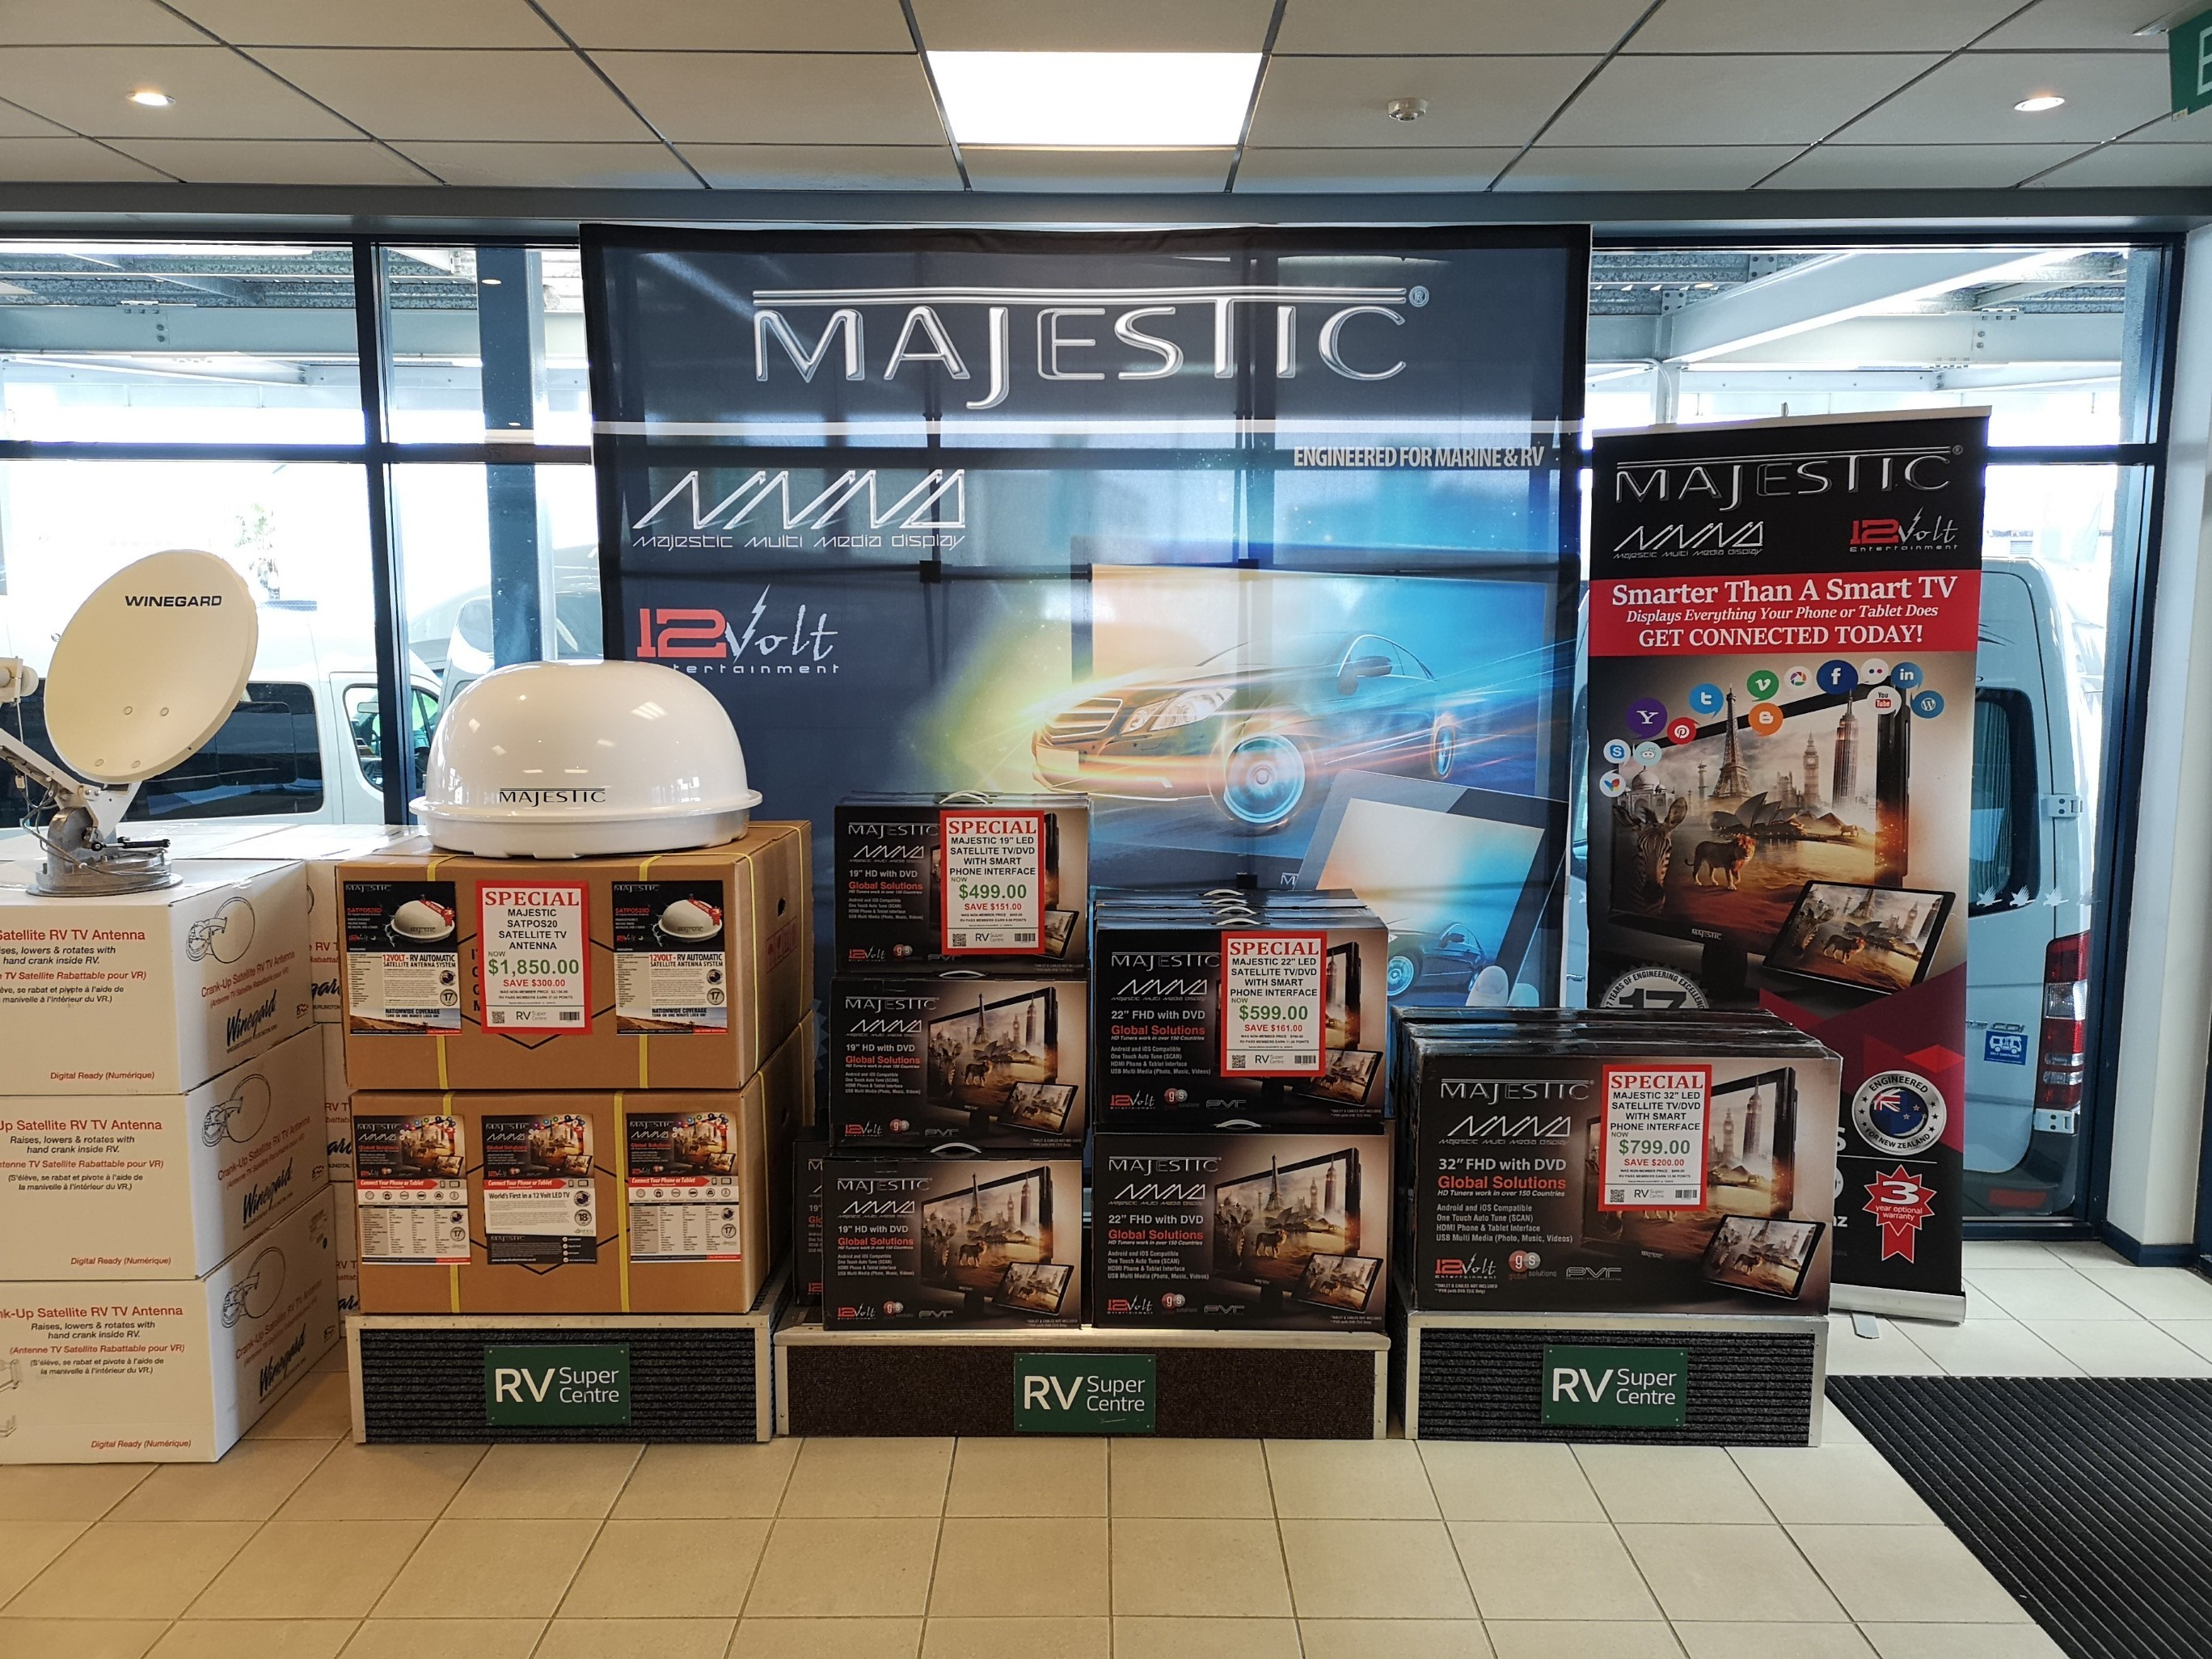 RV Super Centre is holding a huge September Sale with Savings on Majestic Products.